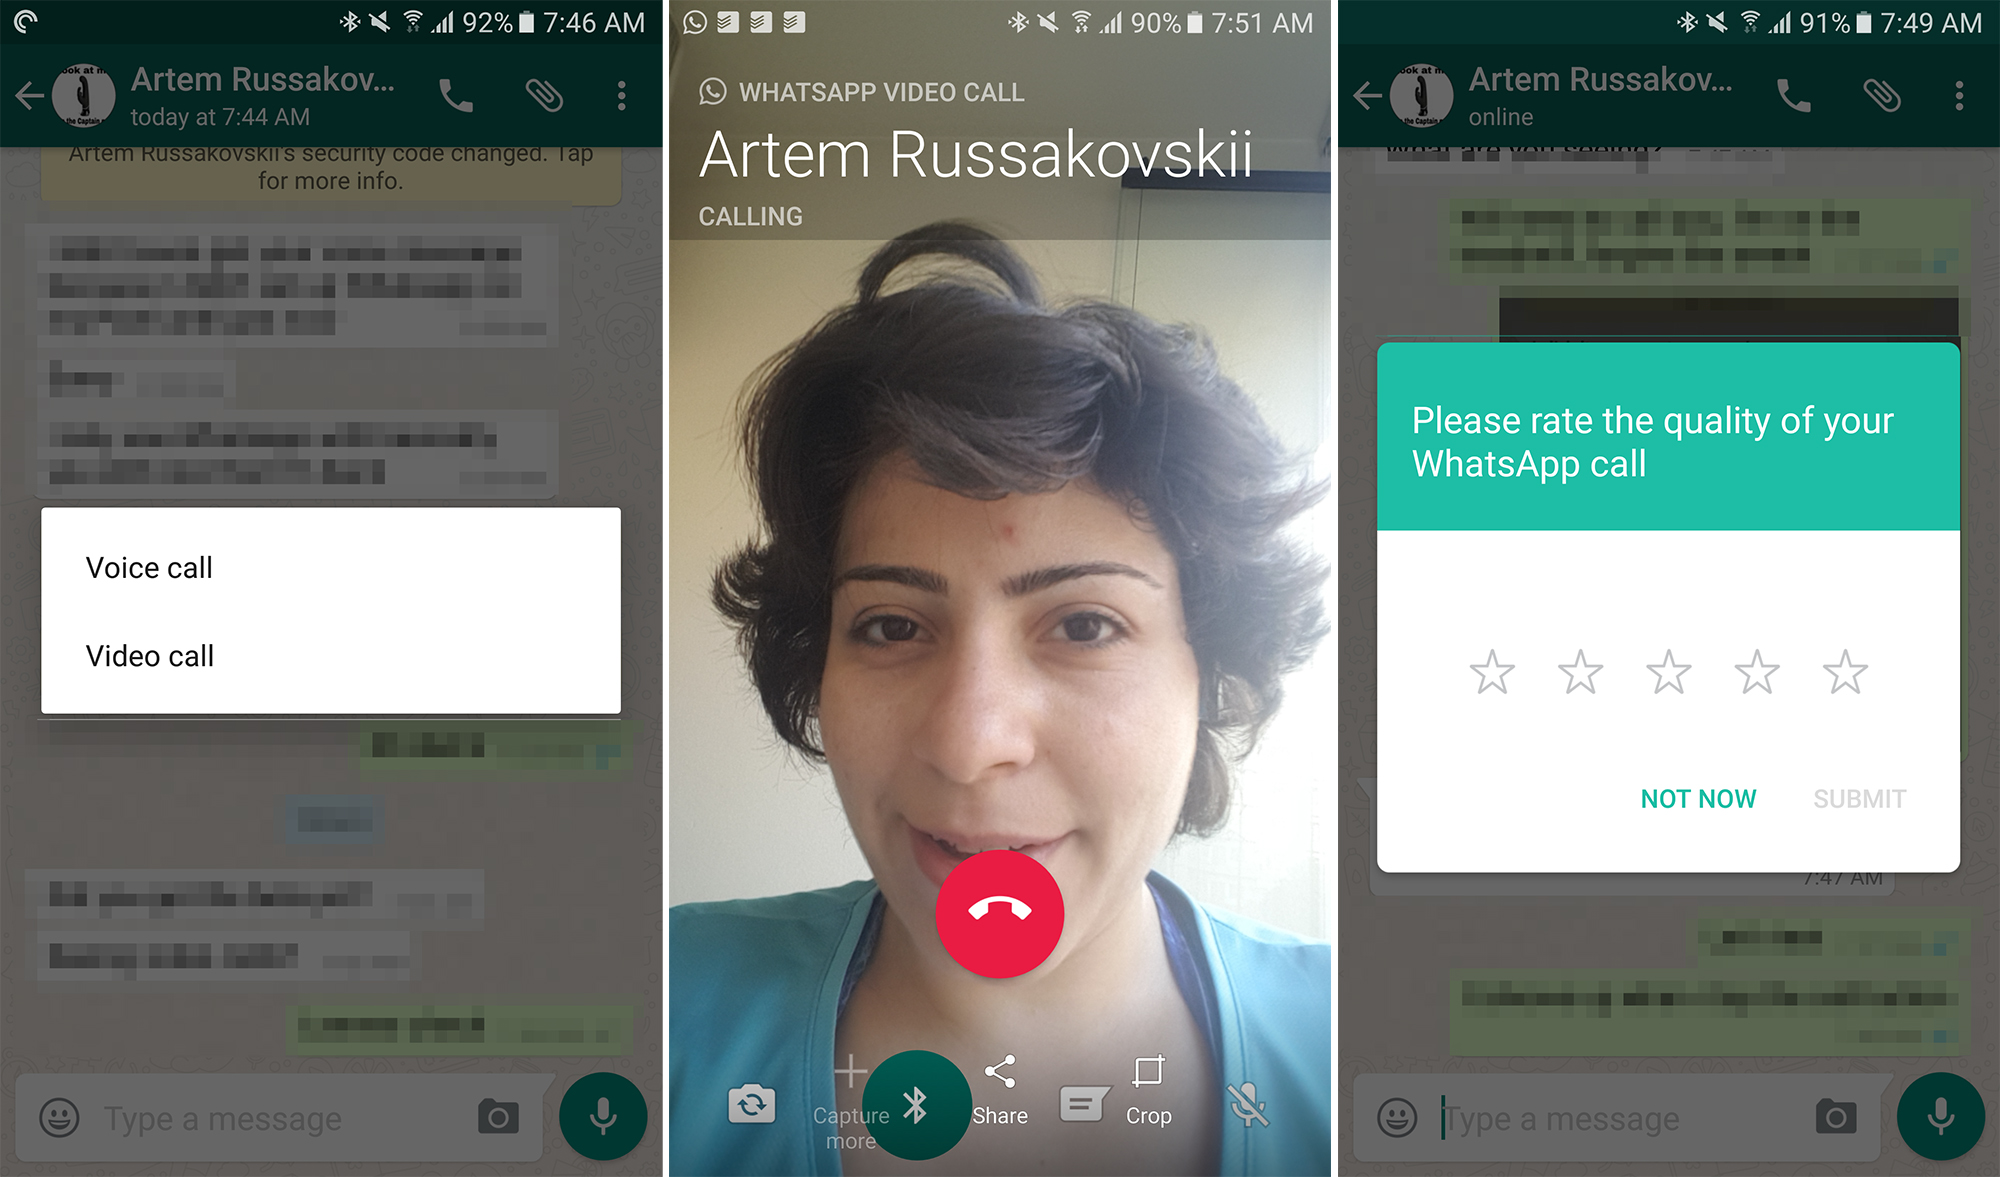 Video calls are going live in WhatsApp